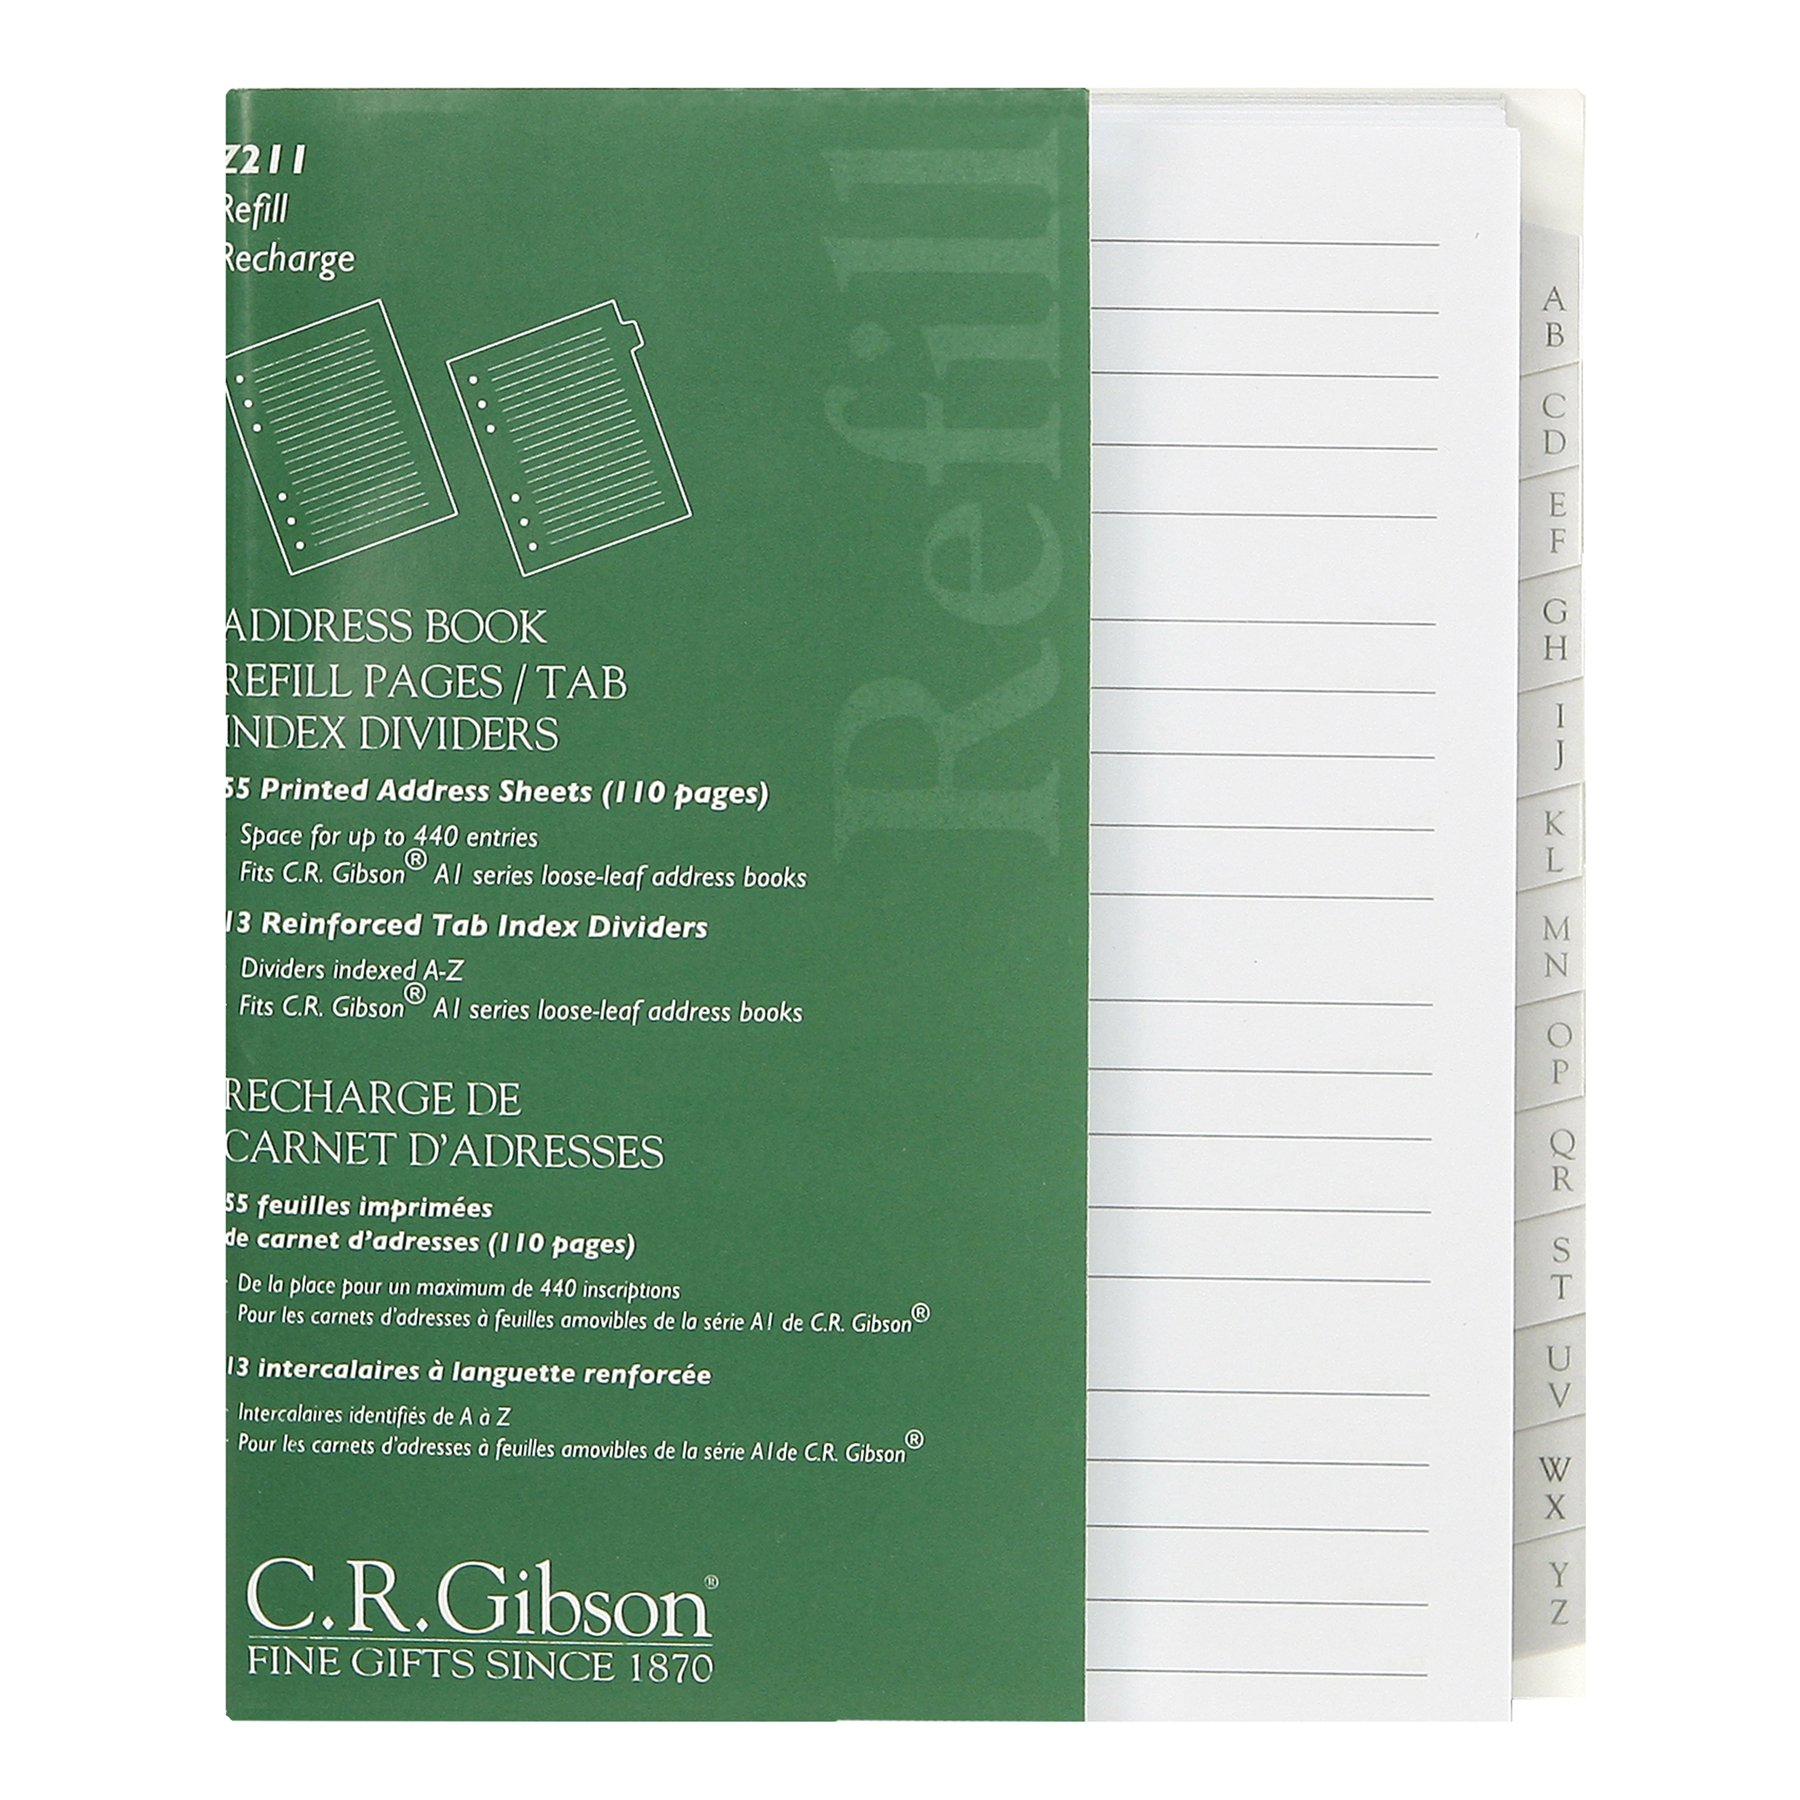 C.R. Gibson Address Book Refill Pages With Tab Index Dividers (Z211)